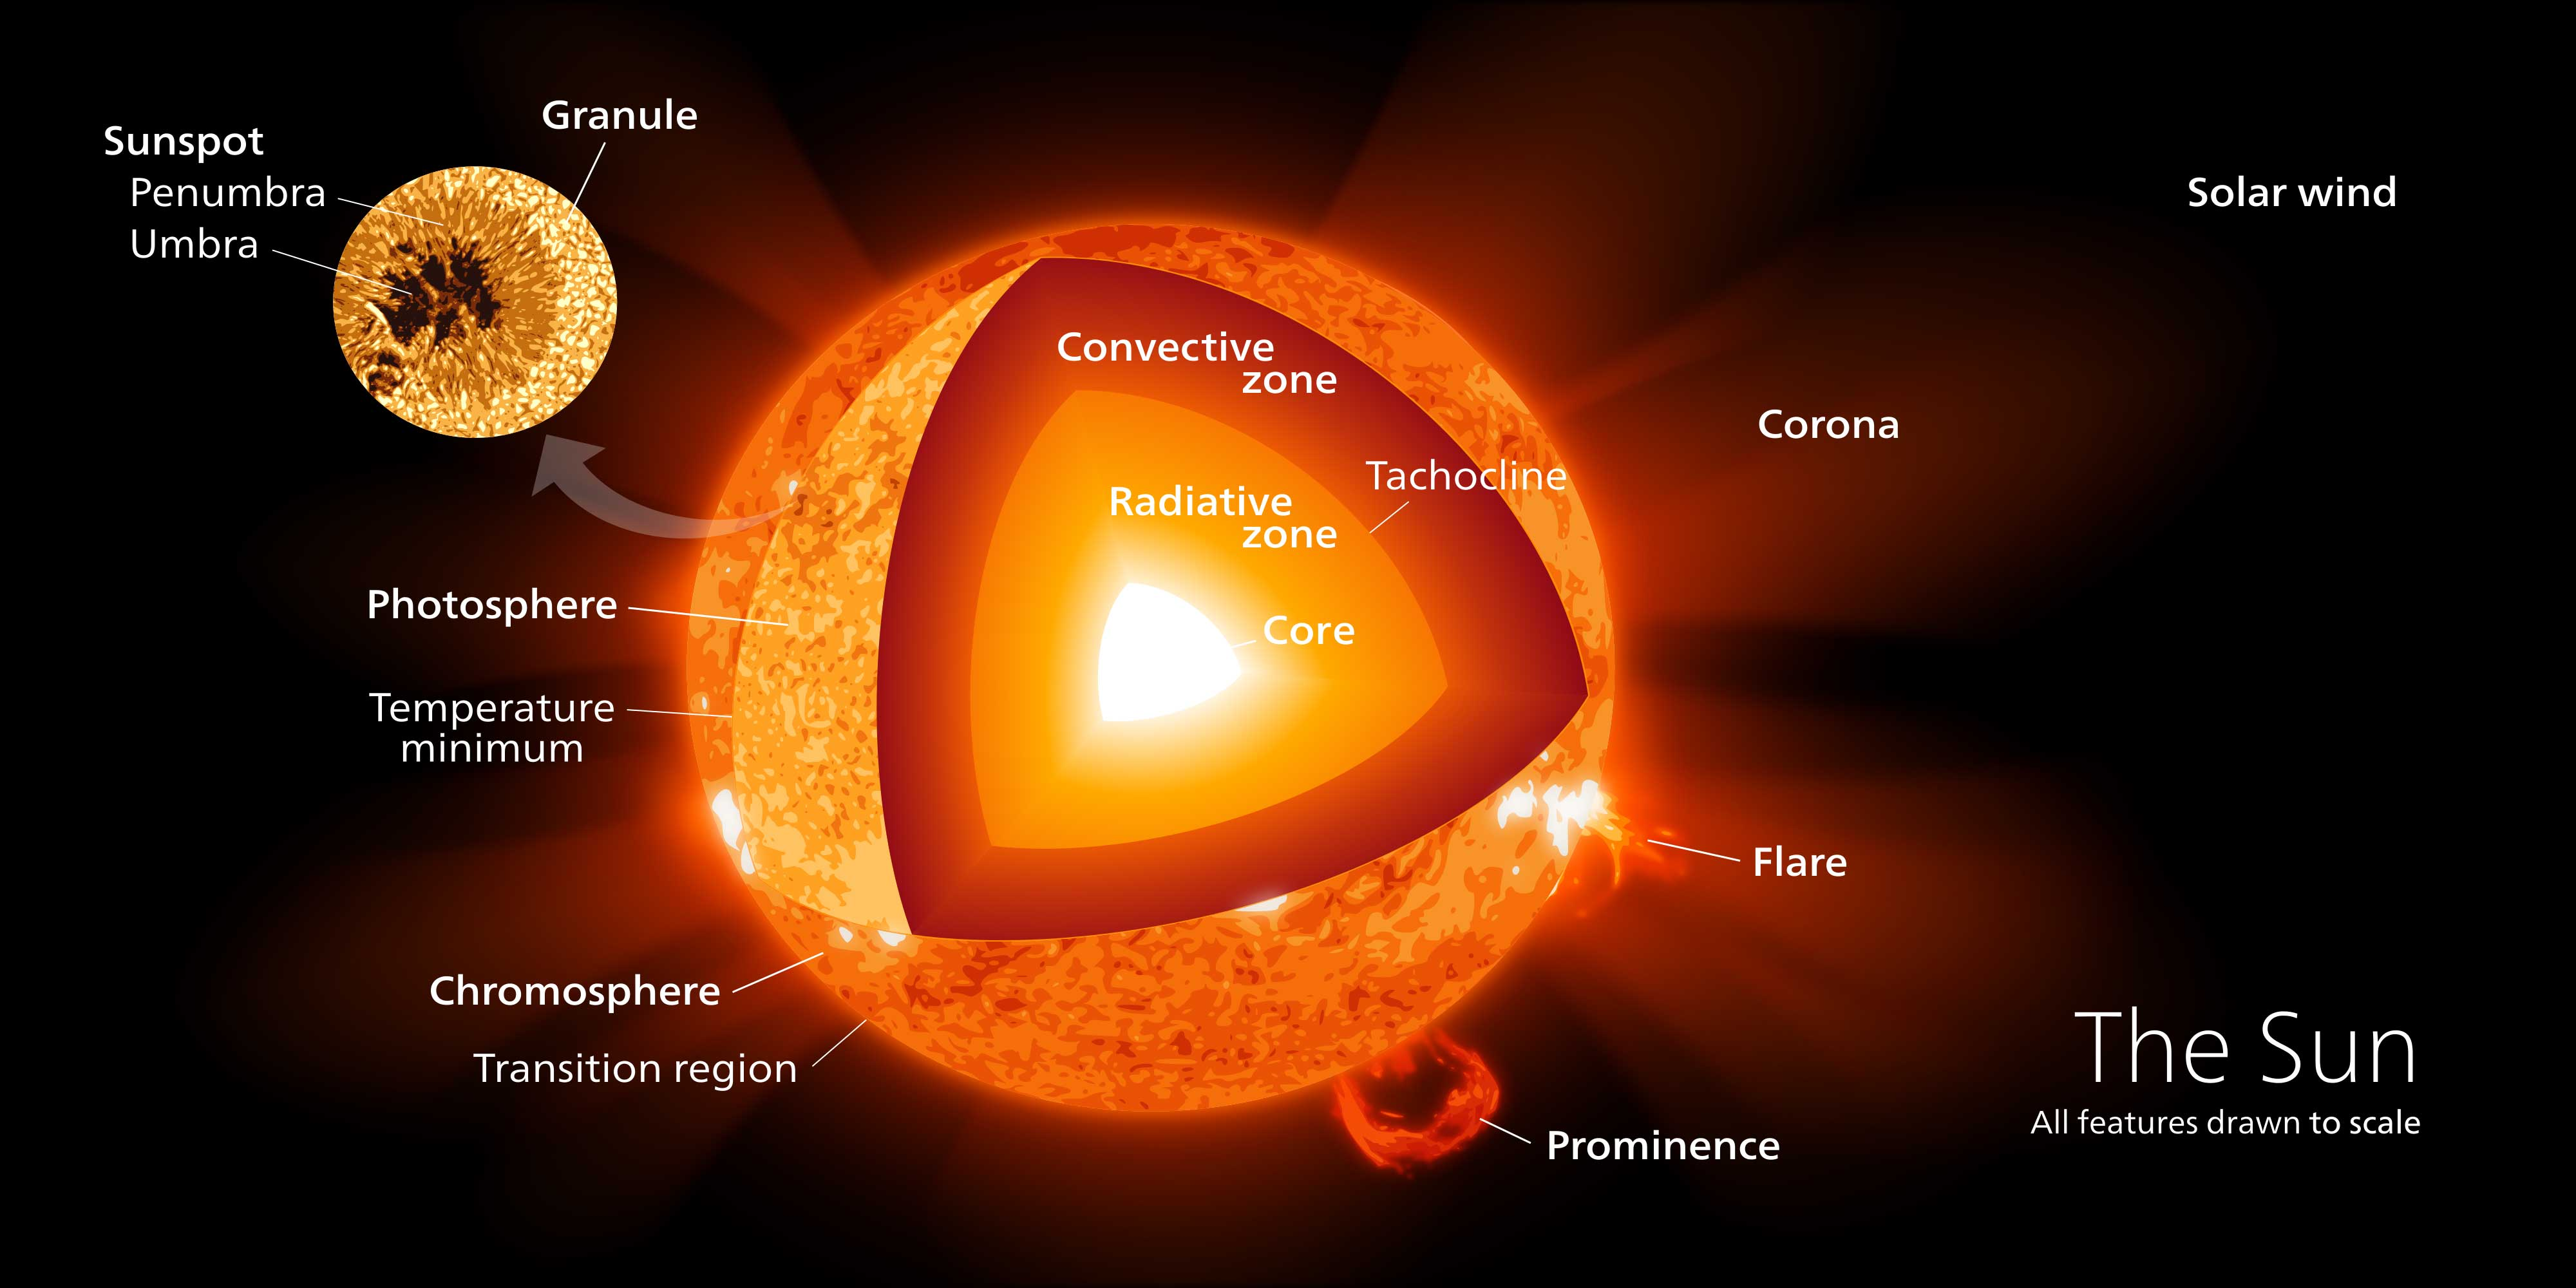 Diagram showing the four major regions of the sun, the connective zone, radiative zone, interface zone, and core.